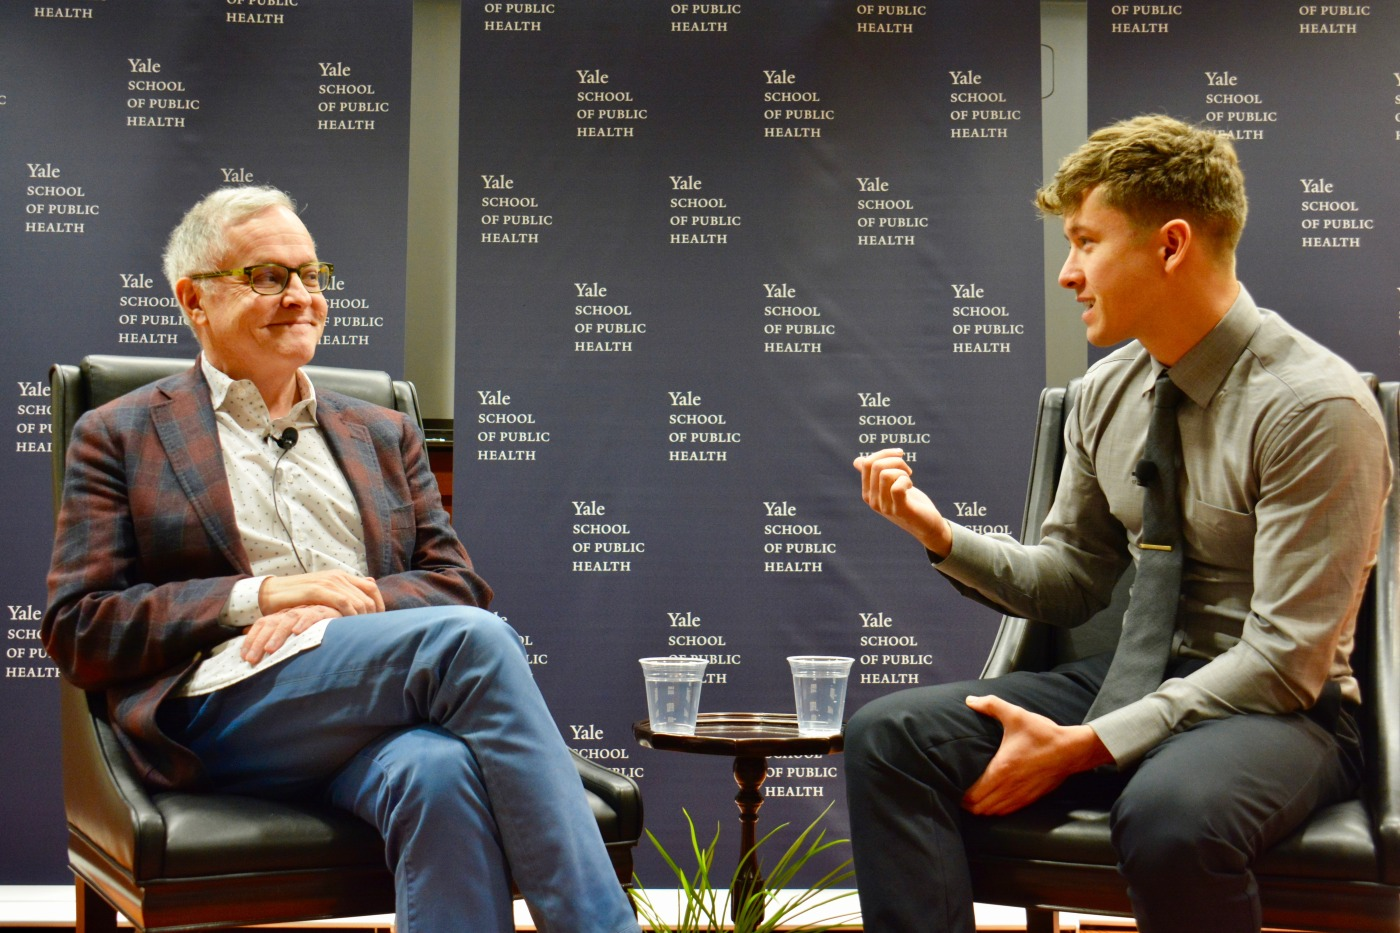 Dr. Neal Baer (left) speaks with Dr. James Hamblin, M.D., M.P.H. '18, about using creative storytelling to convey important messages about public health.